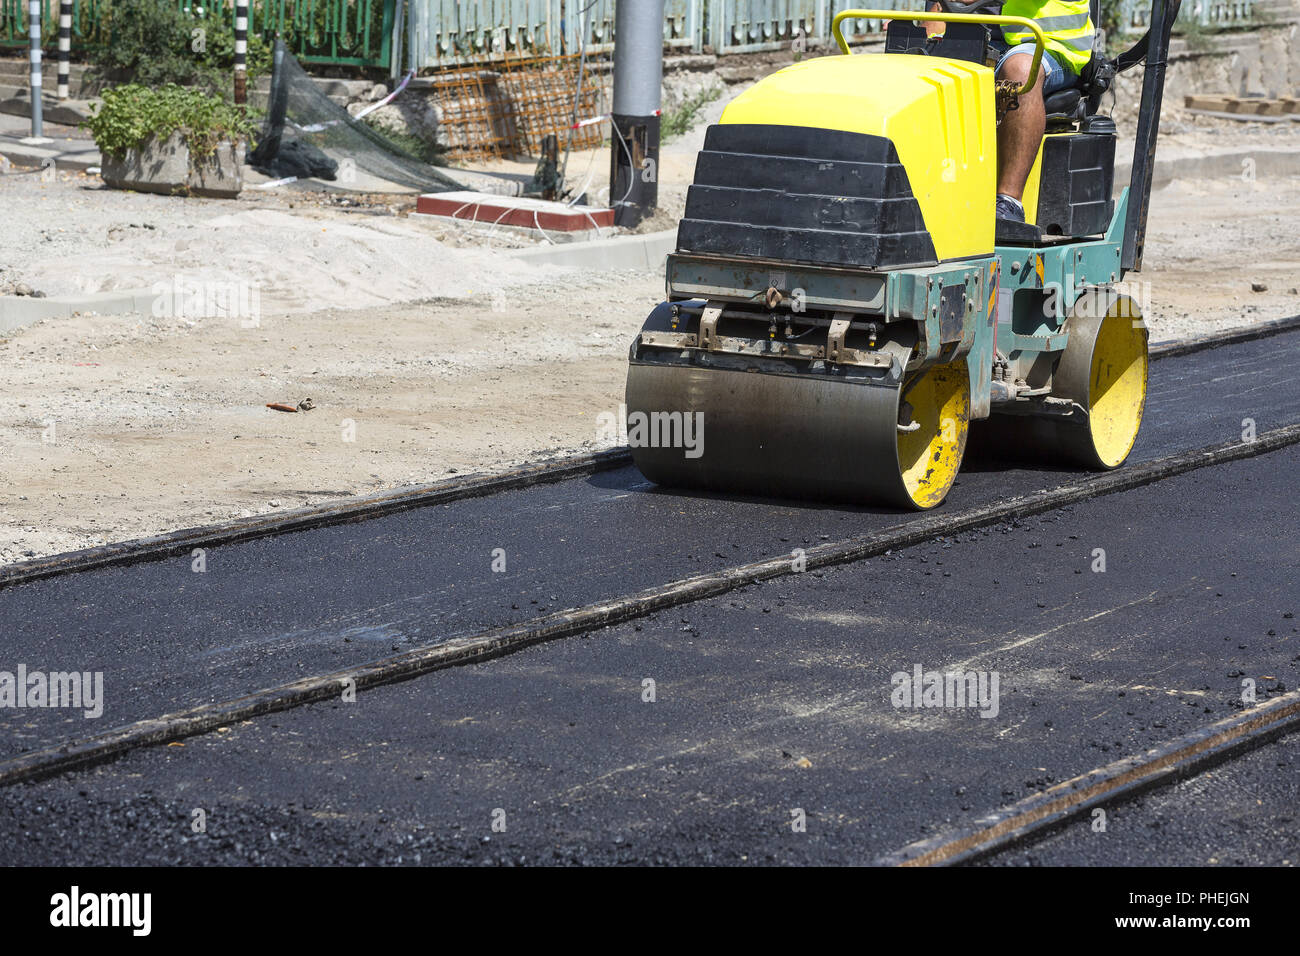 Steamroller construct asphalt road and railroad lines - Stock Image